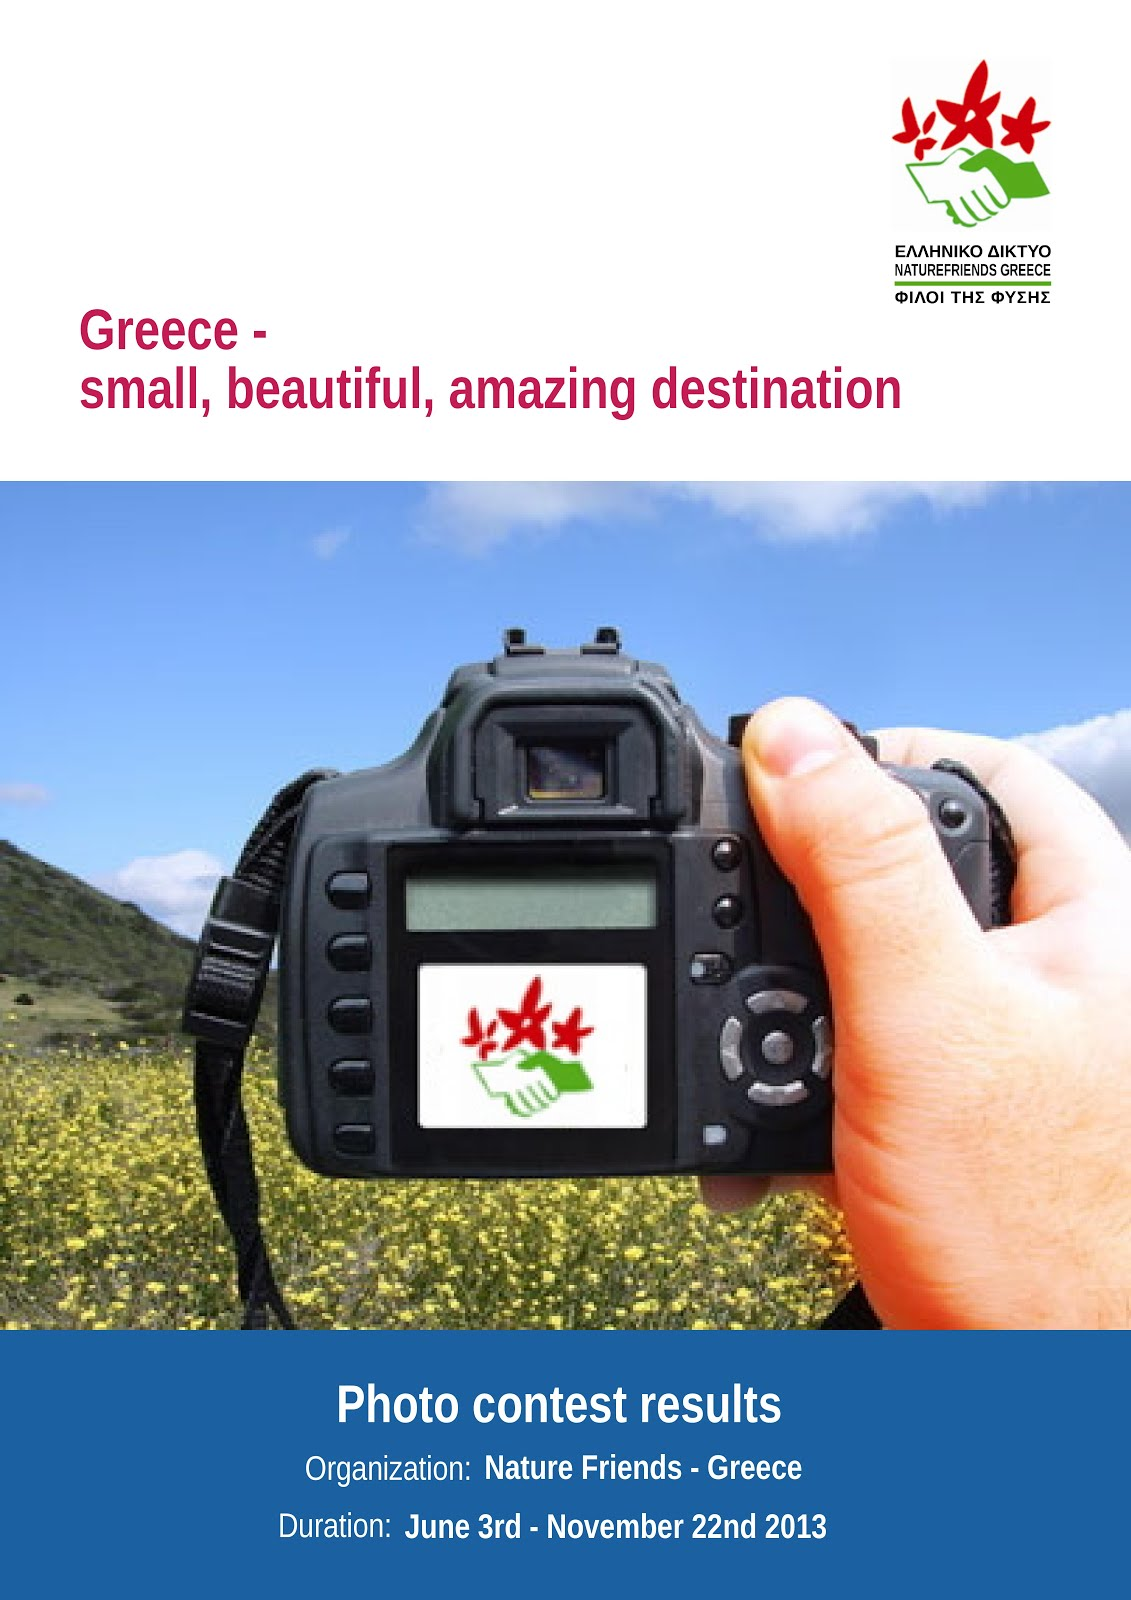 Greece: small, beutifull, amazing destination